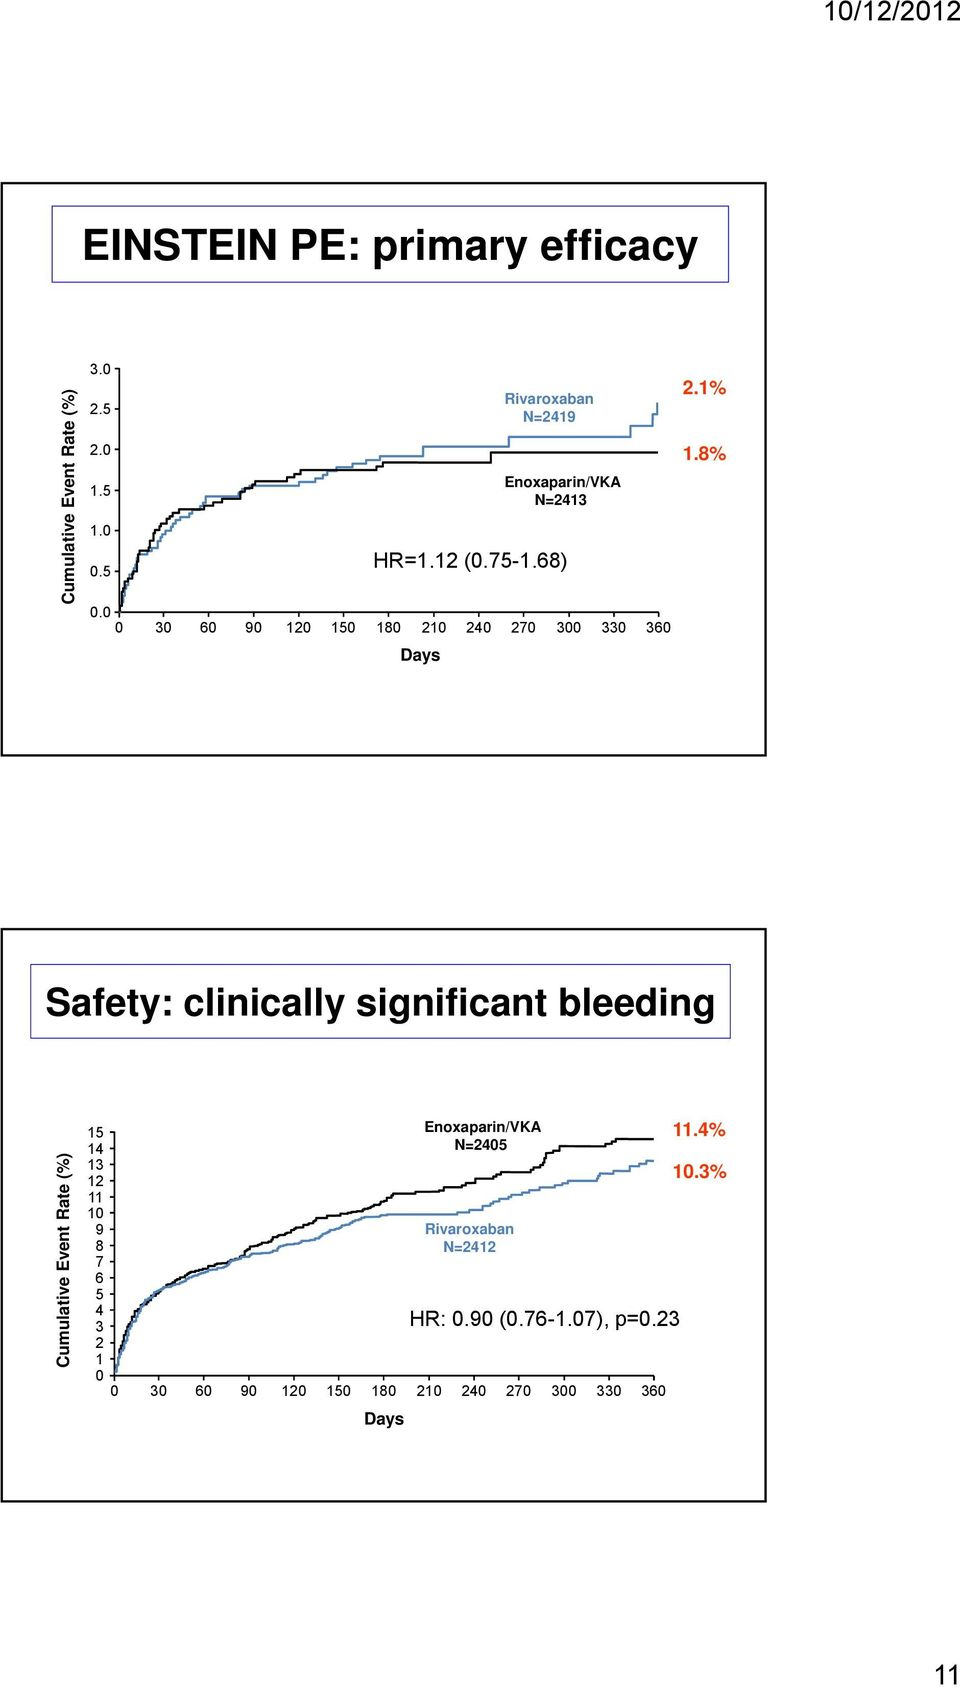 8% Données dans le traitement de la MTEV Safety: clinically significant bleeding Cumula ative Event Rate (%) 15 Enoxaparin/VKA 14 N=2405